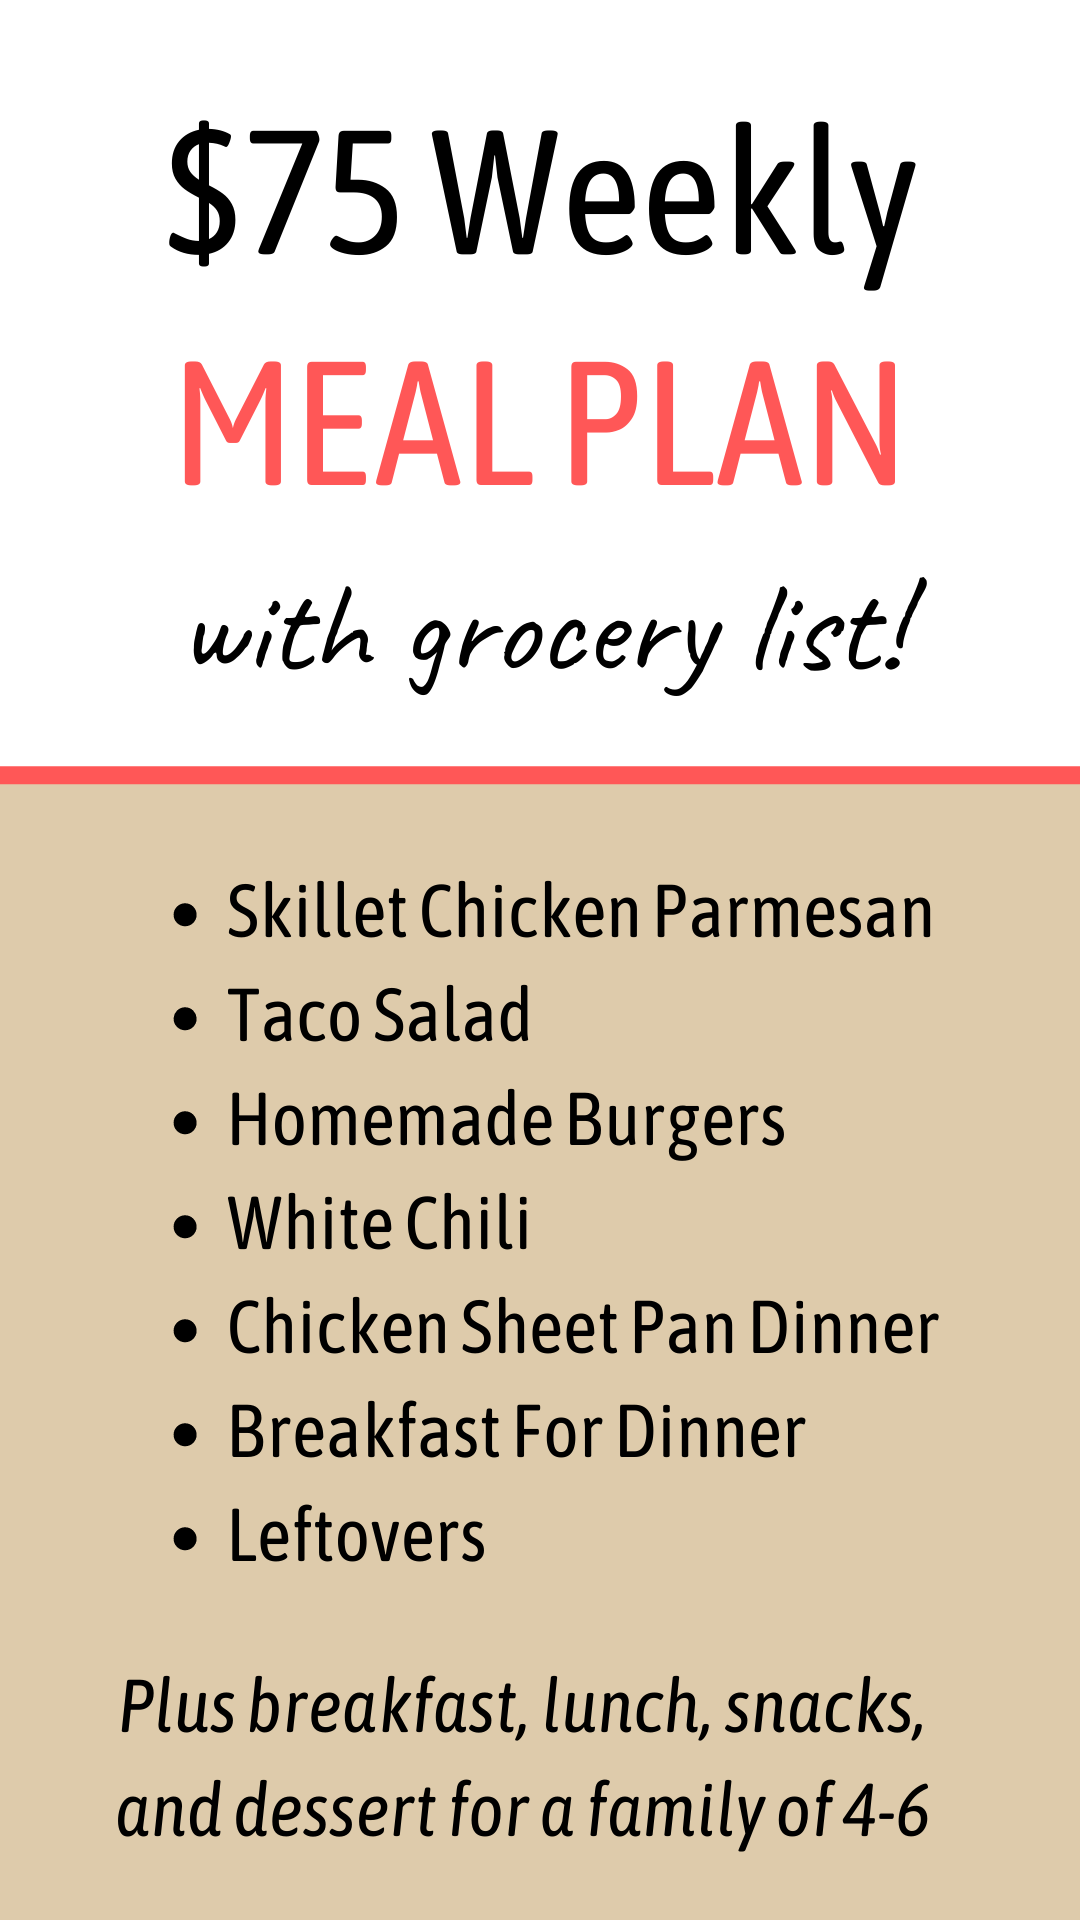 $75 Weekly Meal Plan With Grocery List